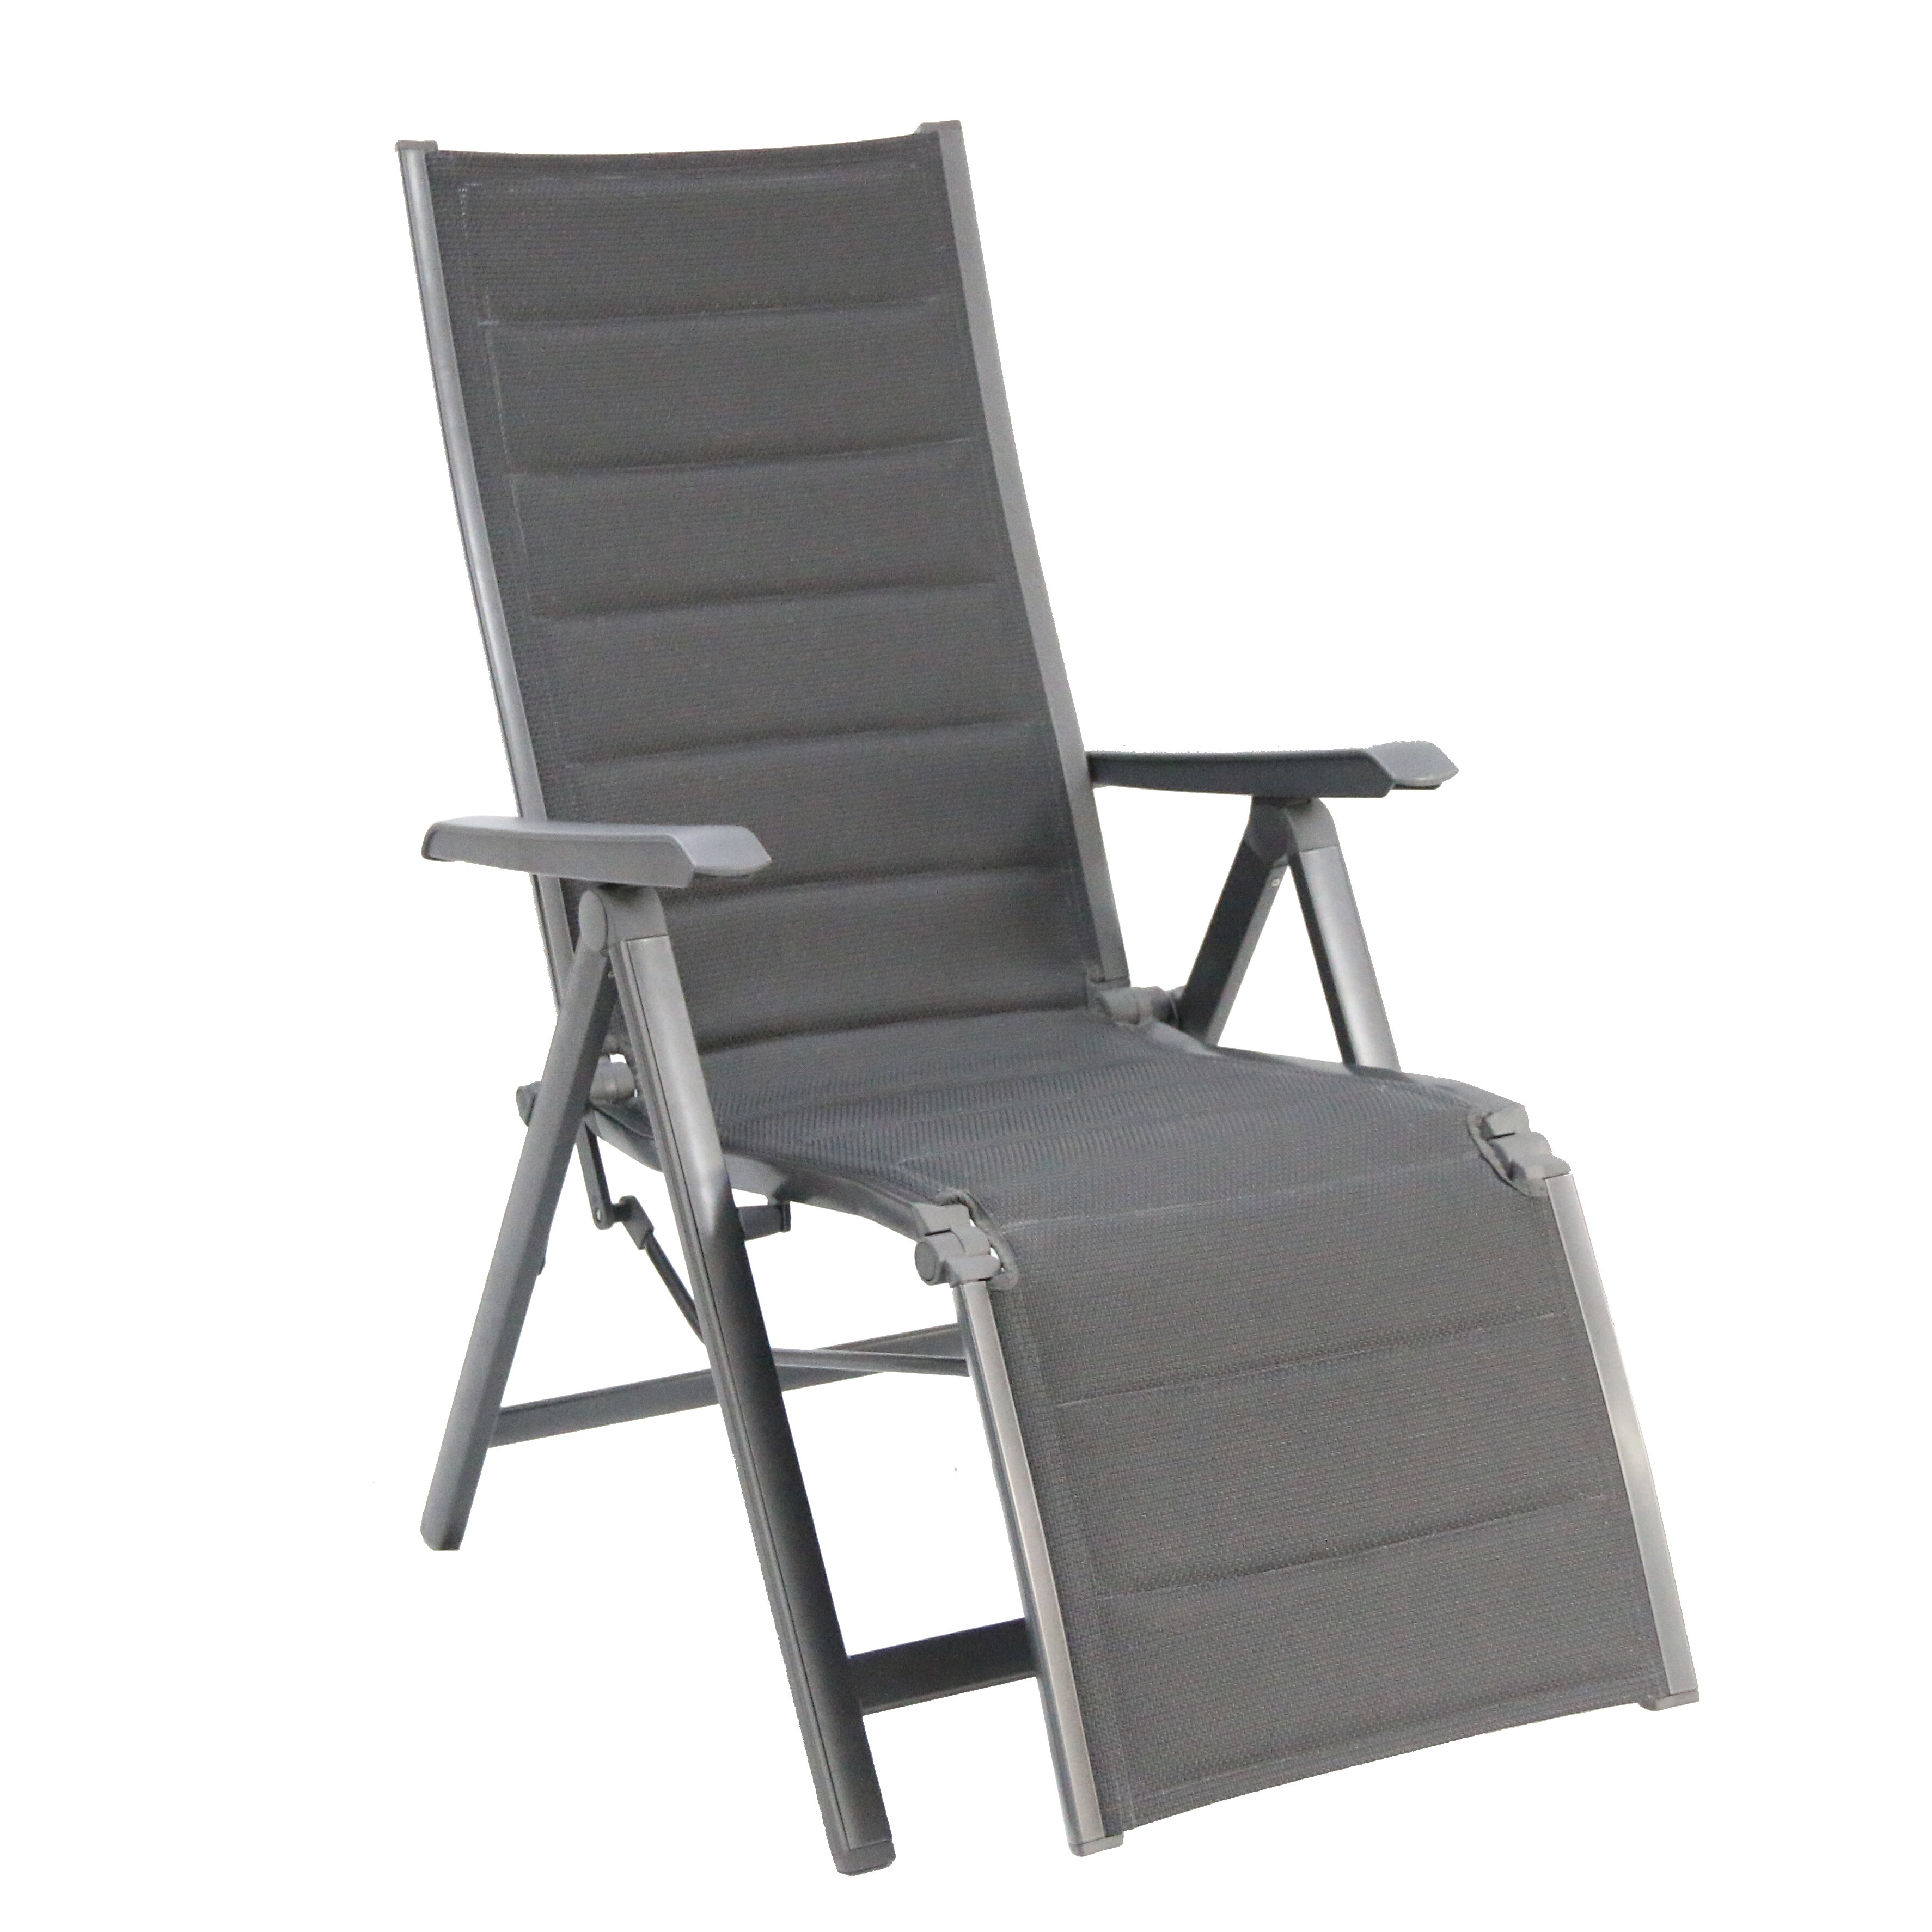 outdoor patio furniture zero gravity chairs royal garden sku